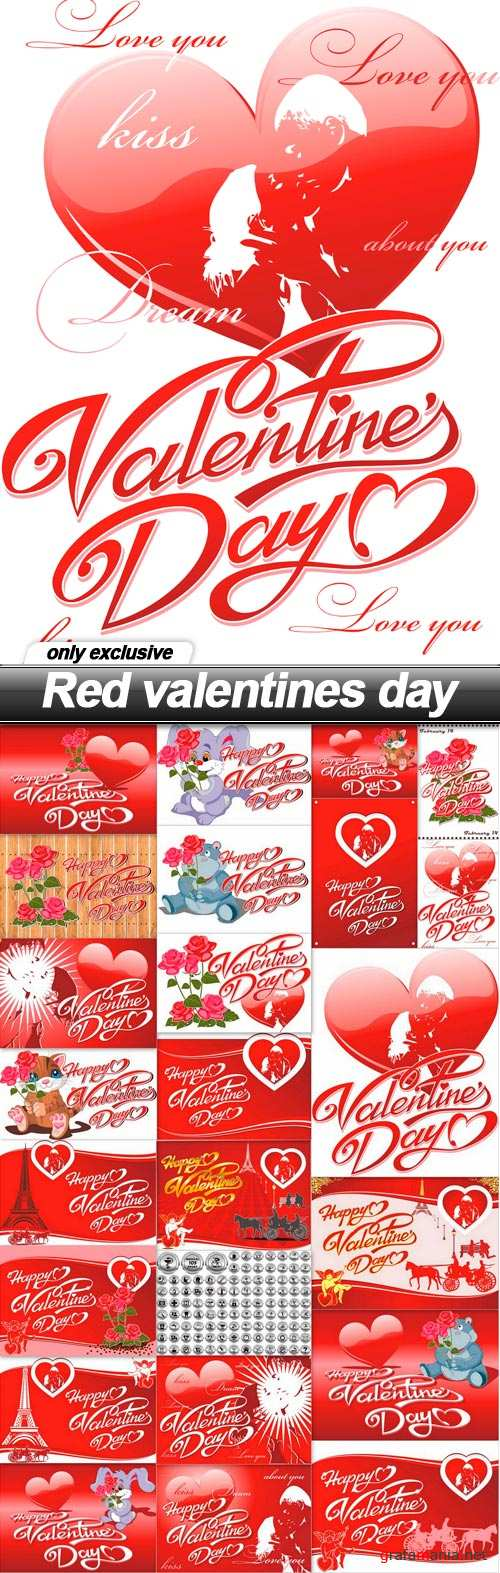 Red valentines day - 24 EPS